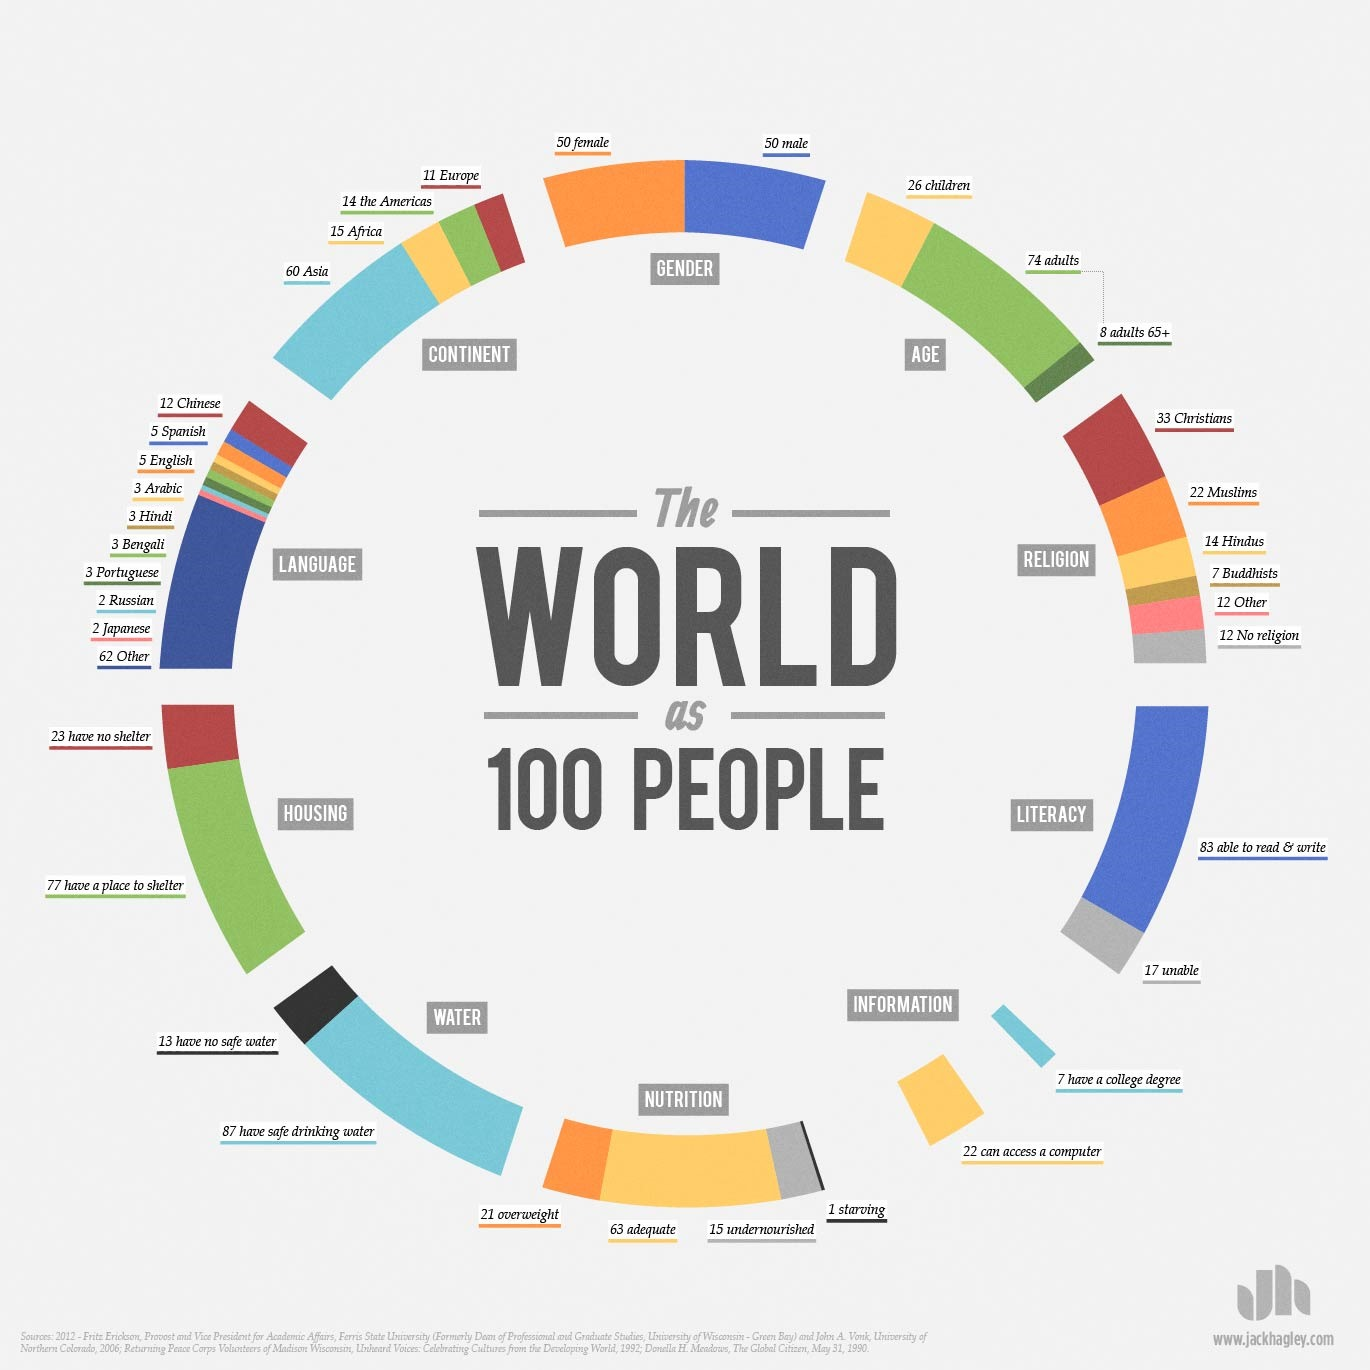 the world as 100 people infographic The World As 100 People [Infographic]